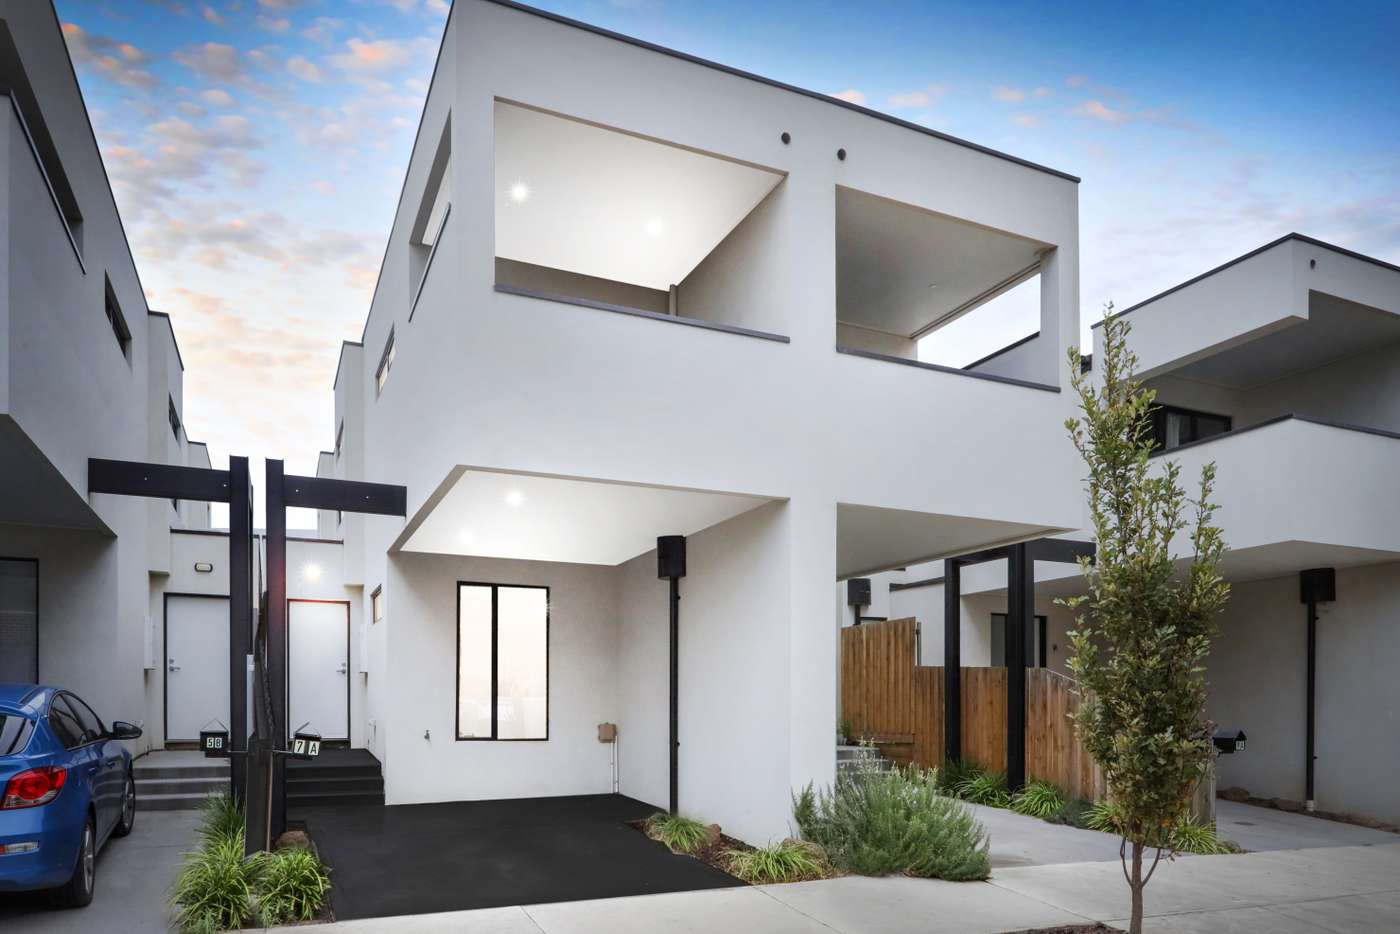 Main view of Homely house listing, 7A Liverpool Street, Footscray VIC 3011